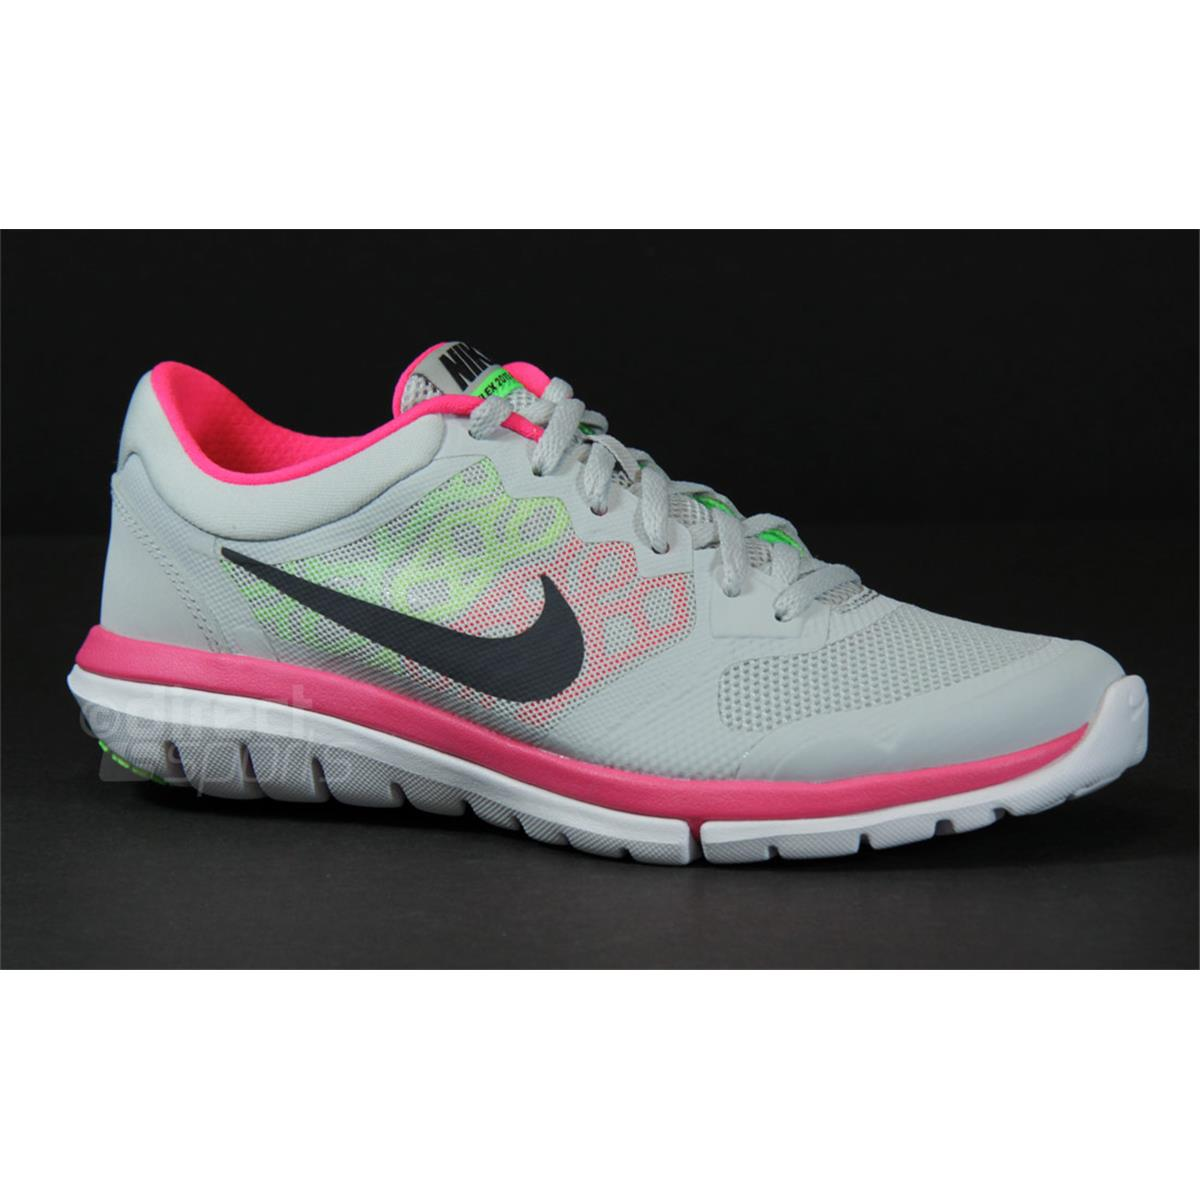 New 2014 Best Nike Running Shoes For Women U0026 Reviews | Handbags Shoes Accessories Reviews 2015